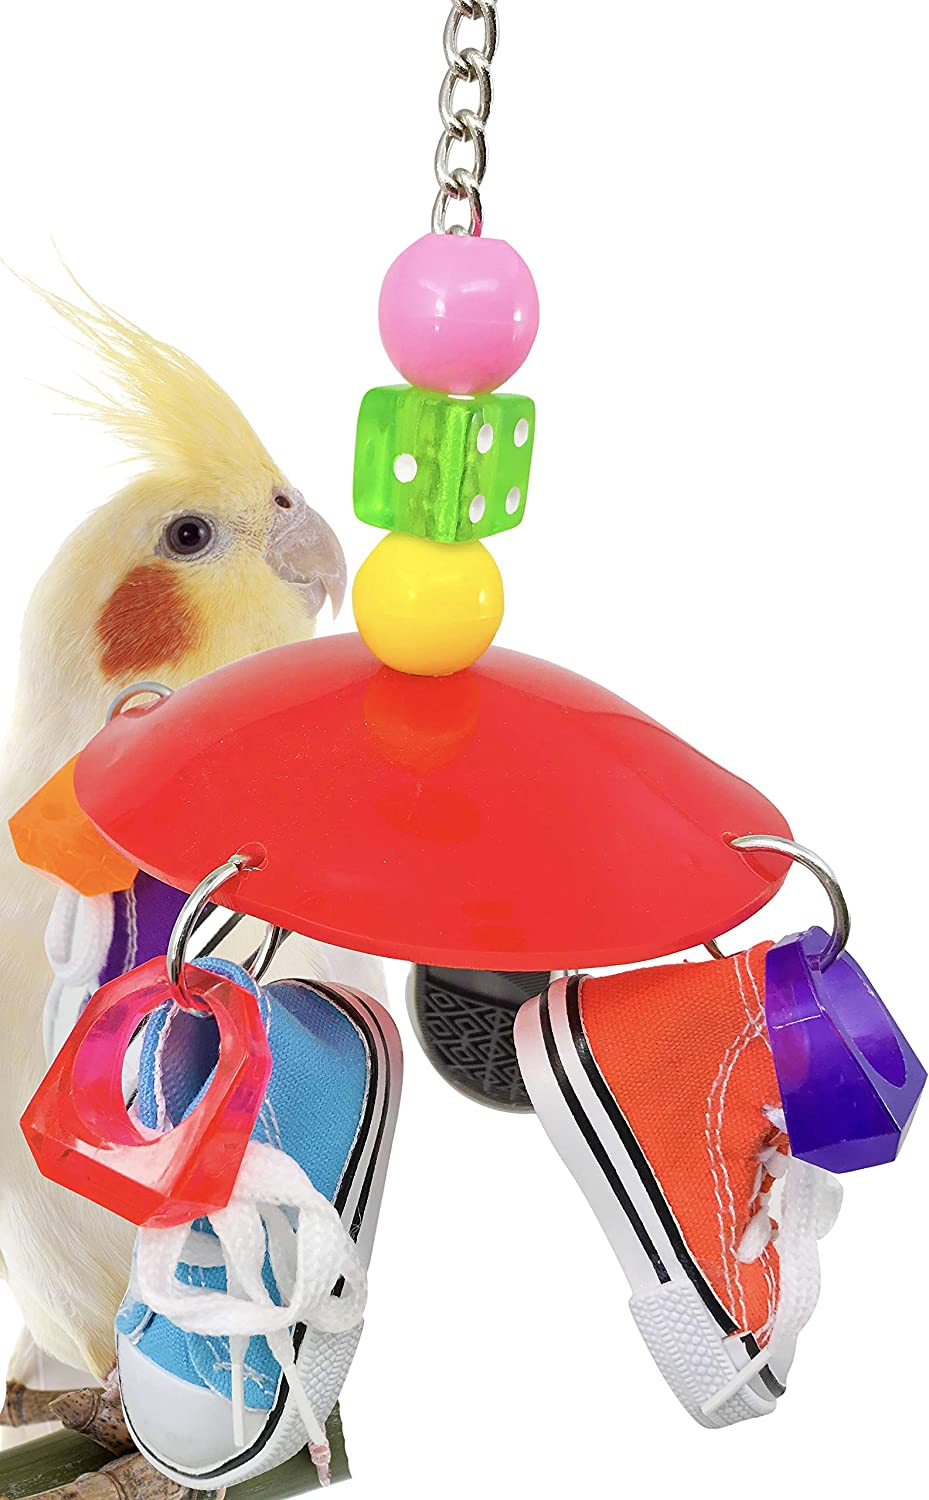 Bonka Bird Toys 1886 Disk Sneaker Bird Toy parred cage toys cages african grey amazon conure